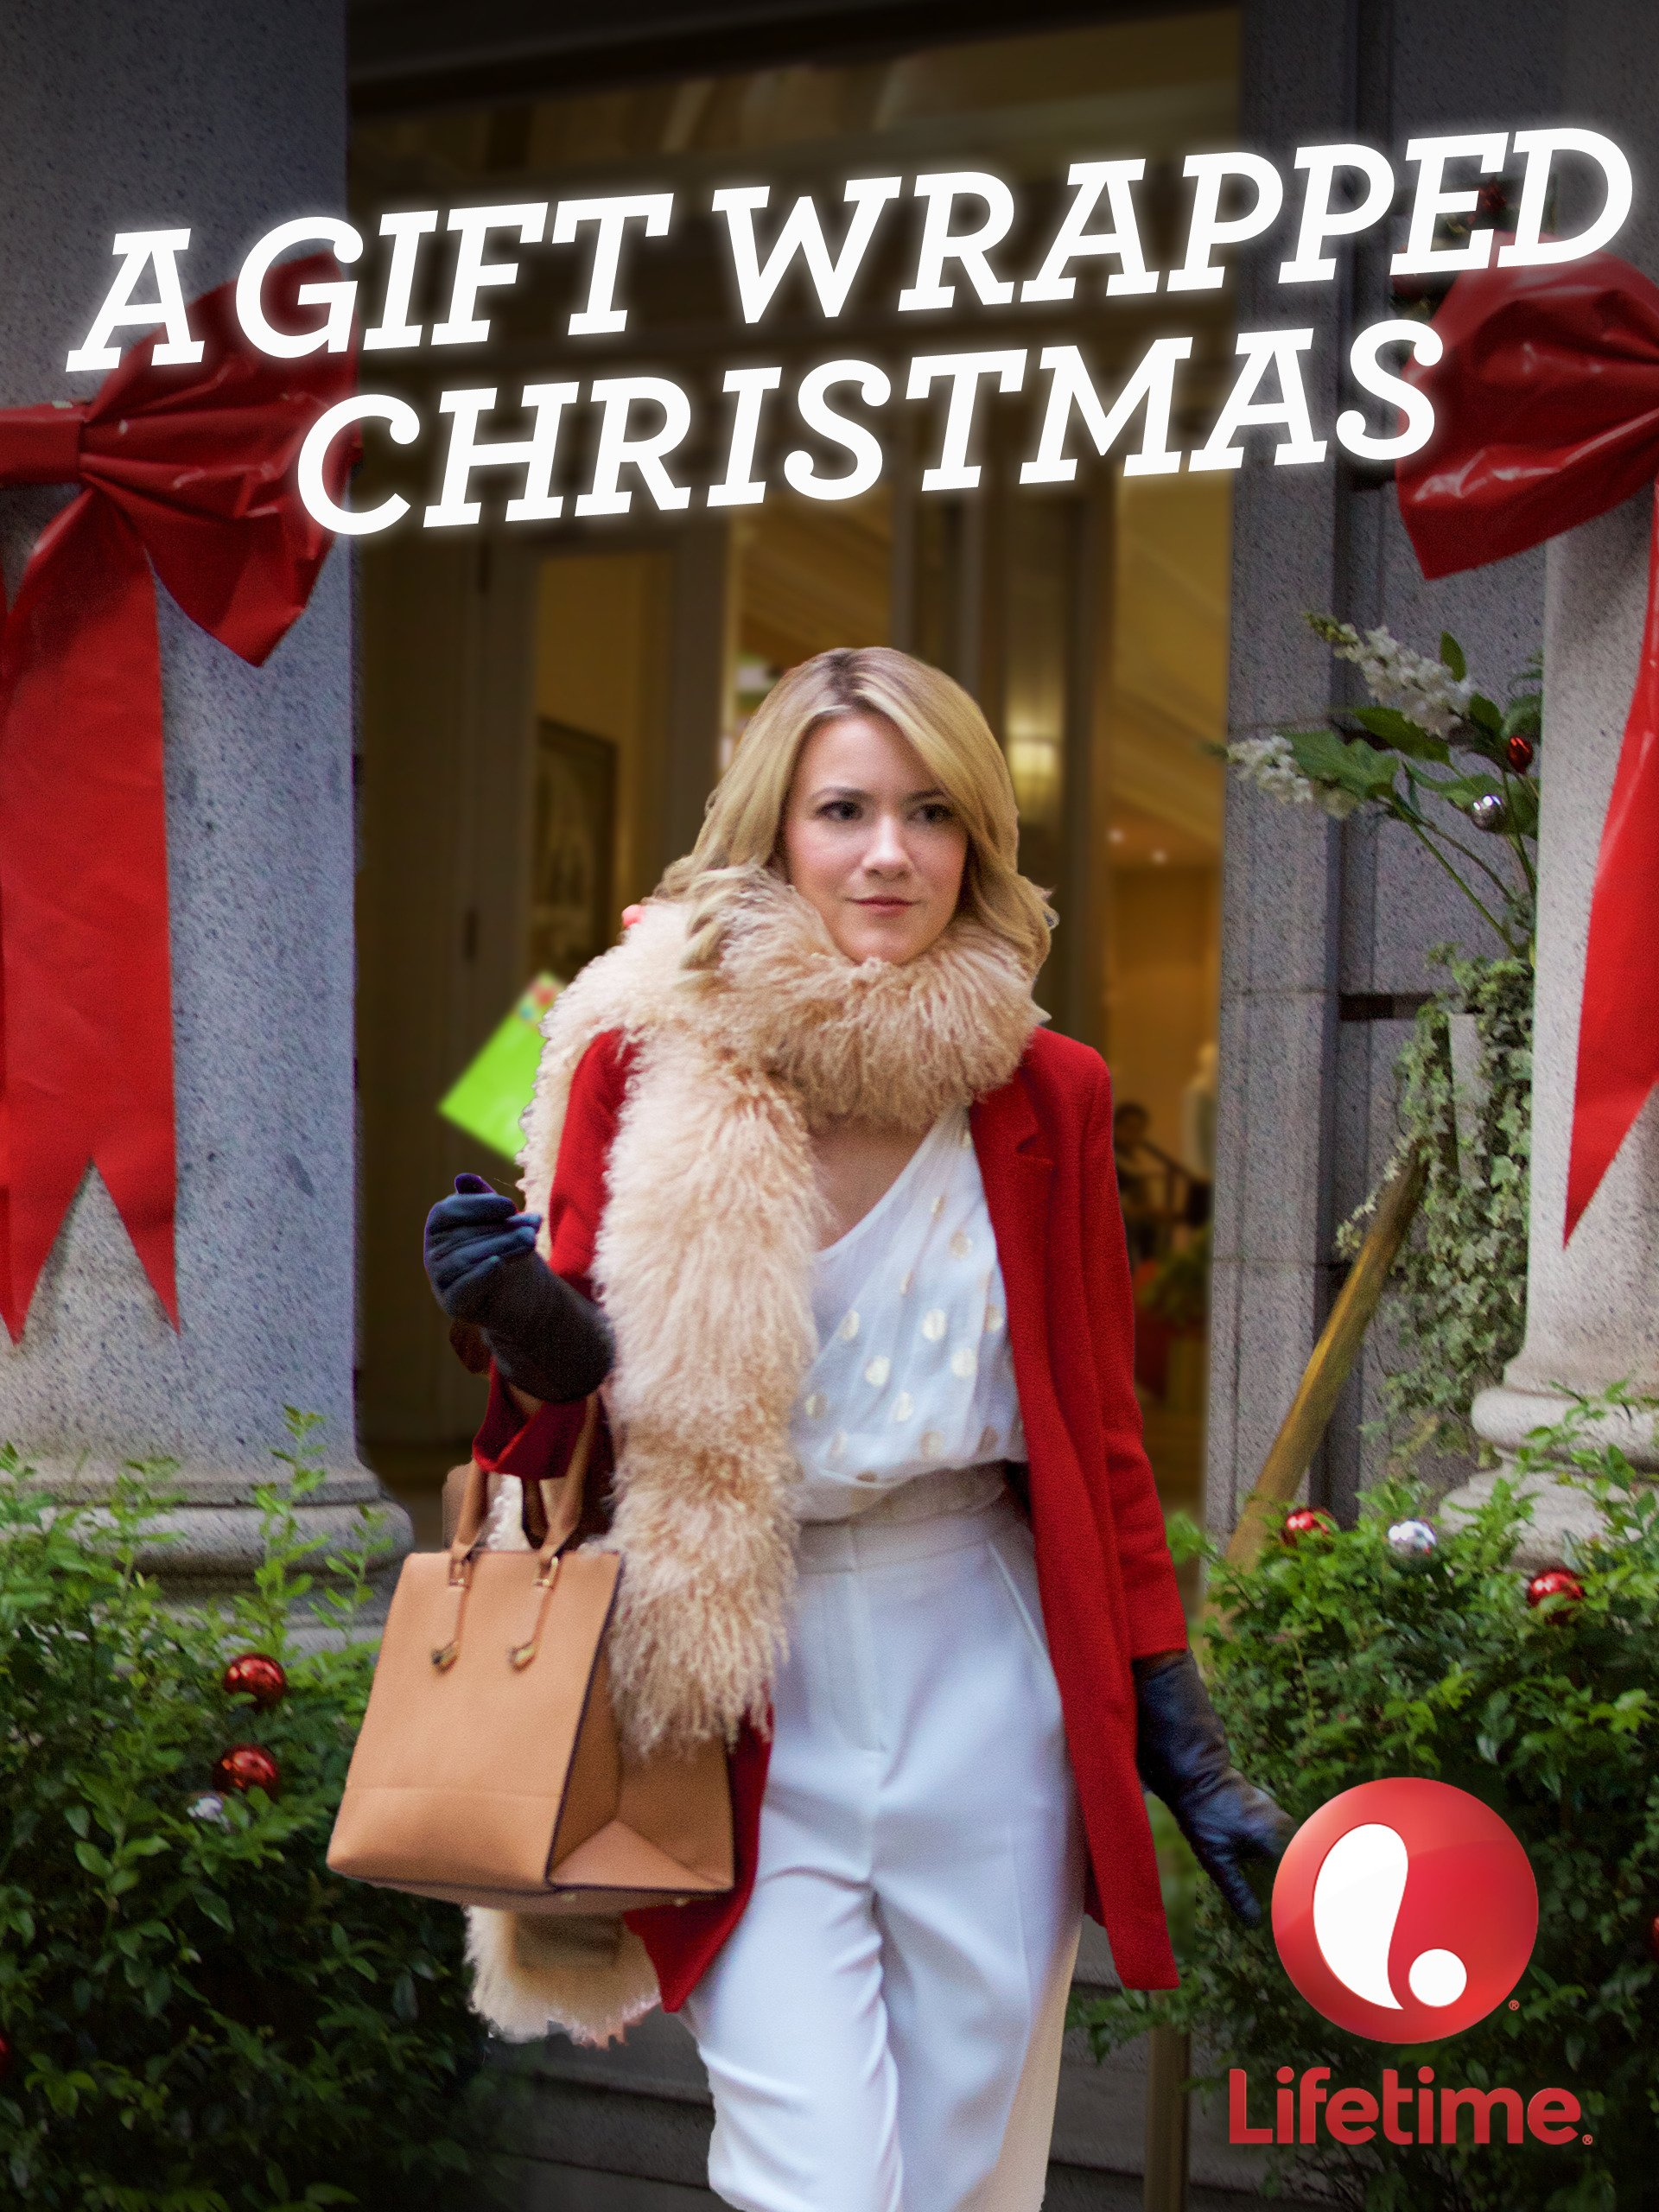 Amazon.com: A GIFT WRAPPED CHRISTMAS: Inc. Johnson Management ...